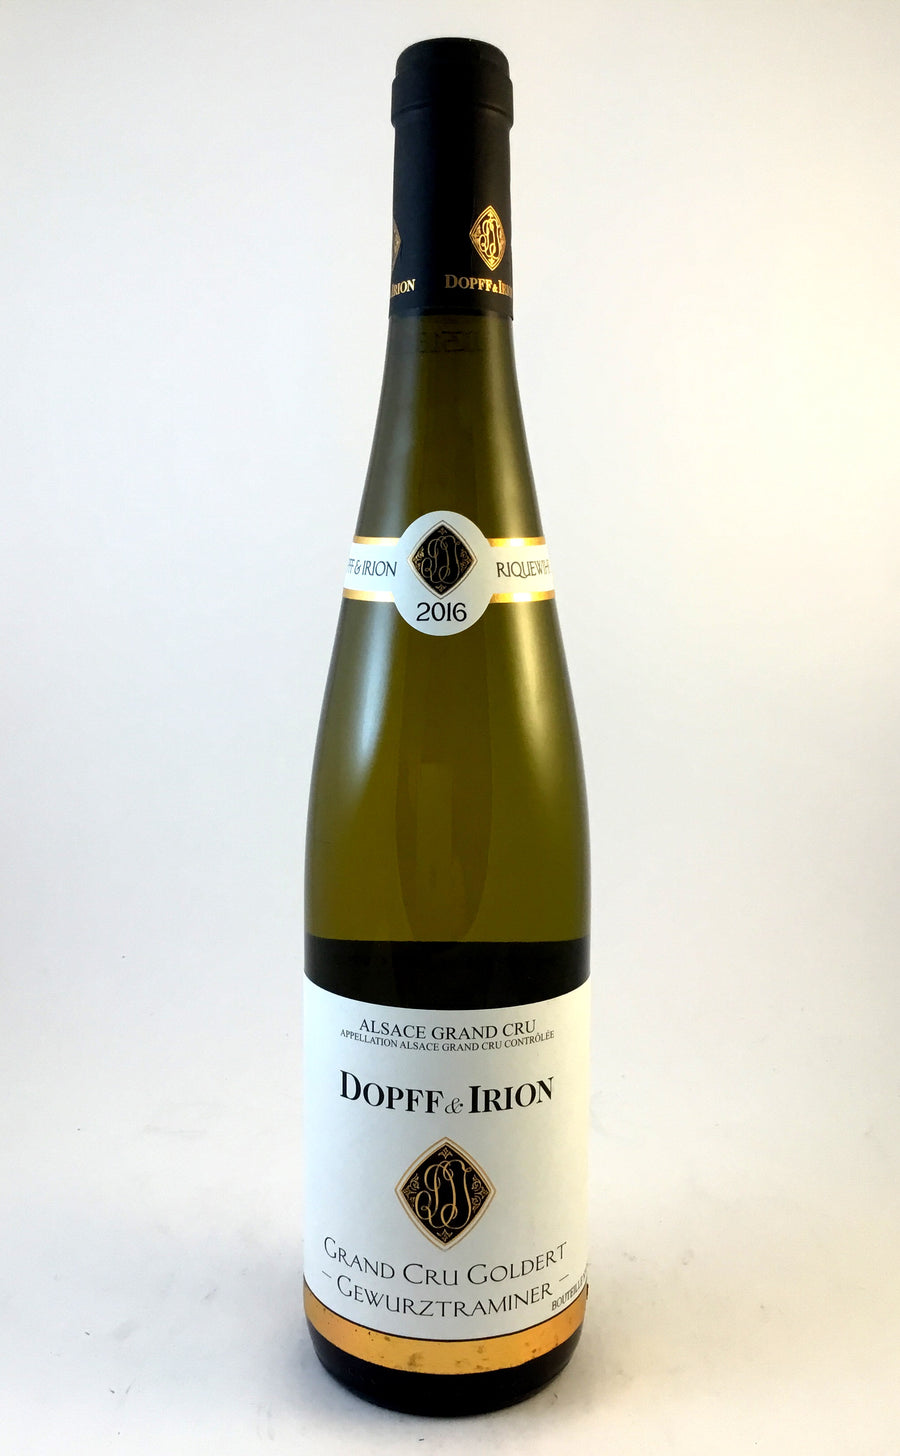 Dopff & Irion Grand Cru Goldert Gewurztraminer - Wineseeker